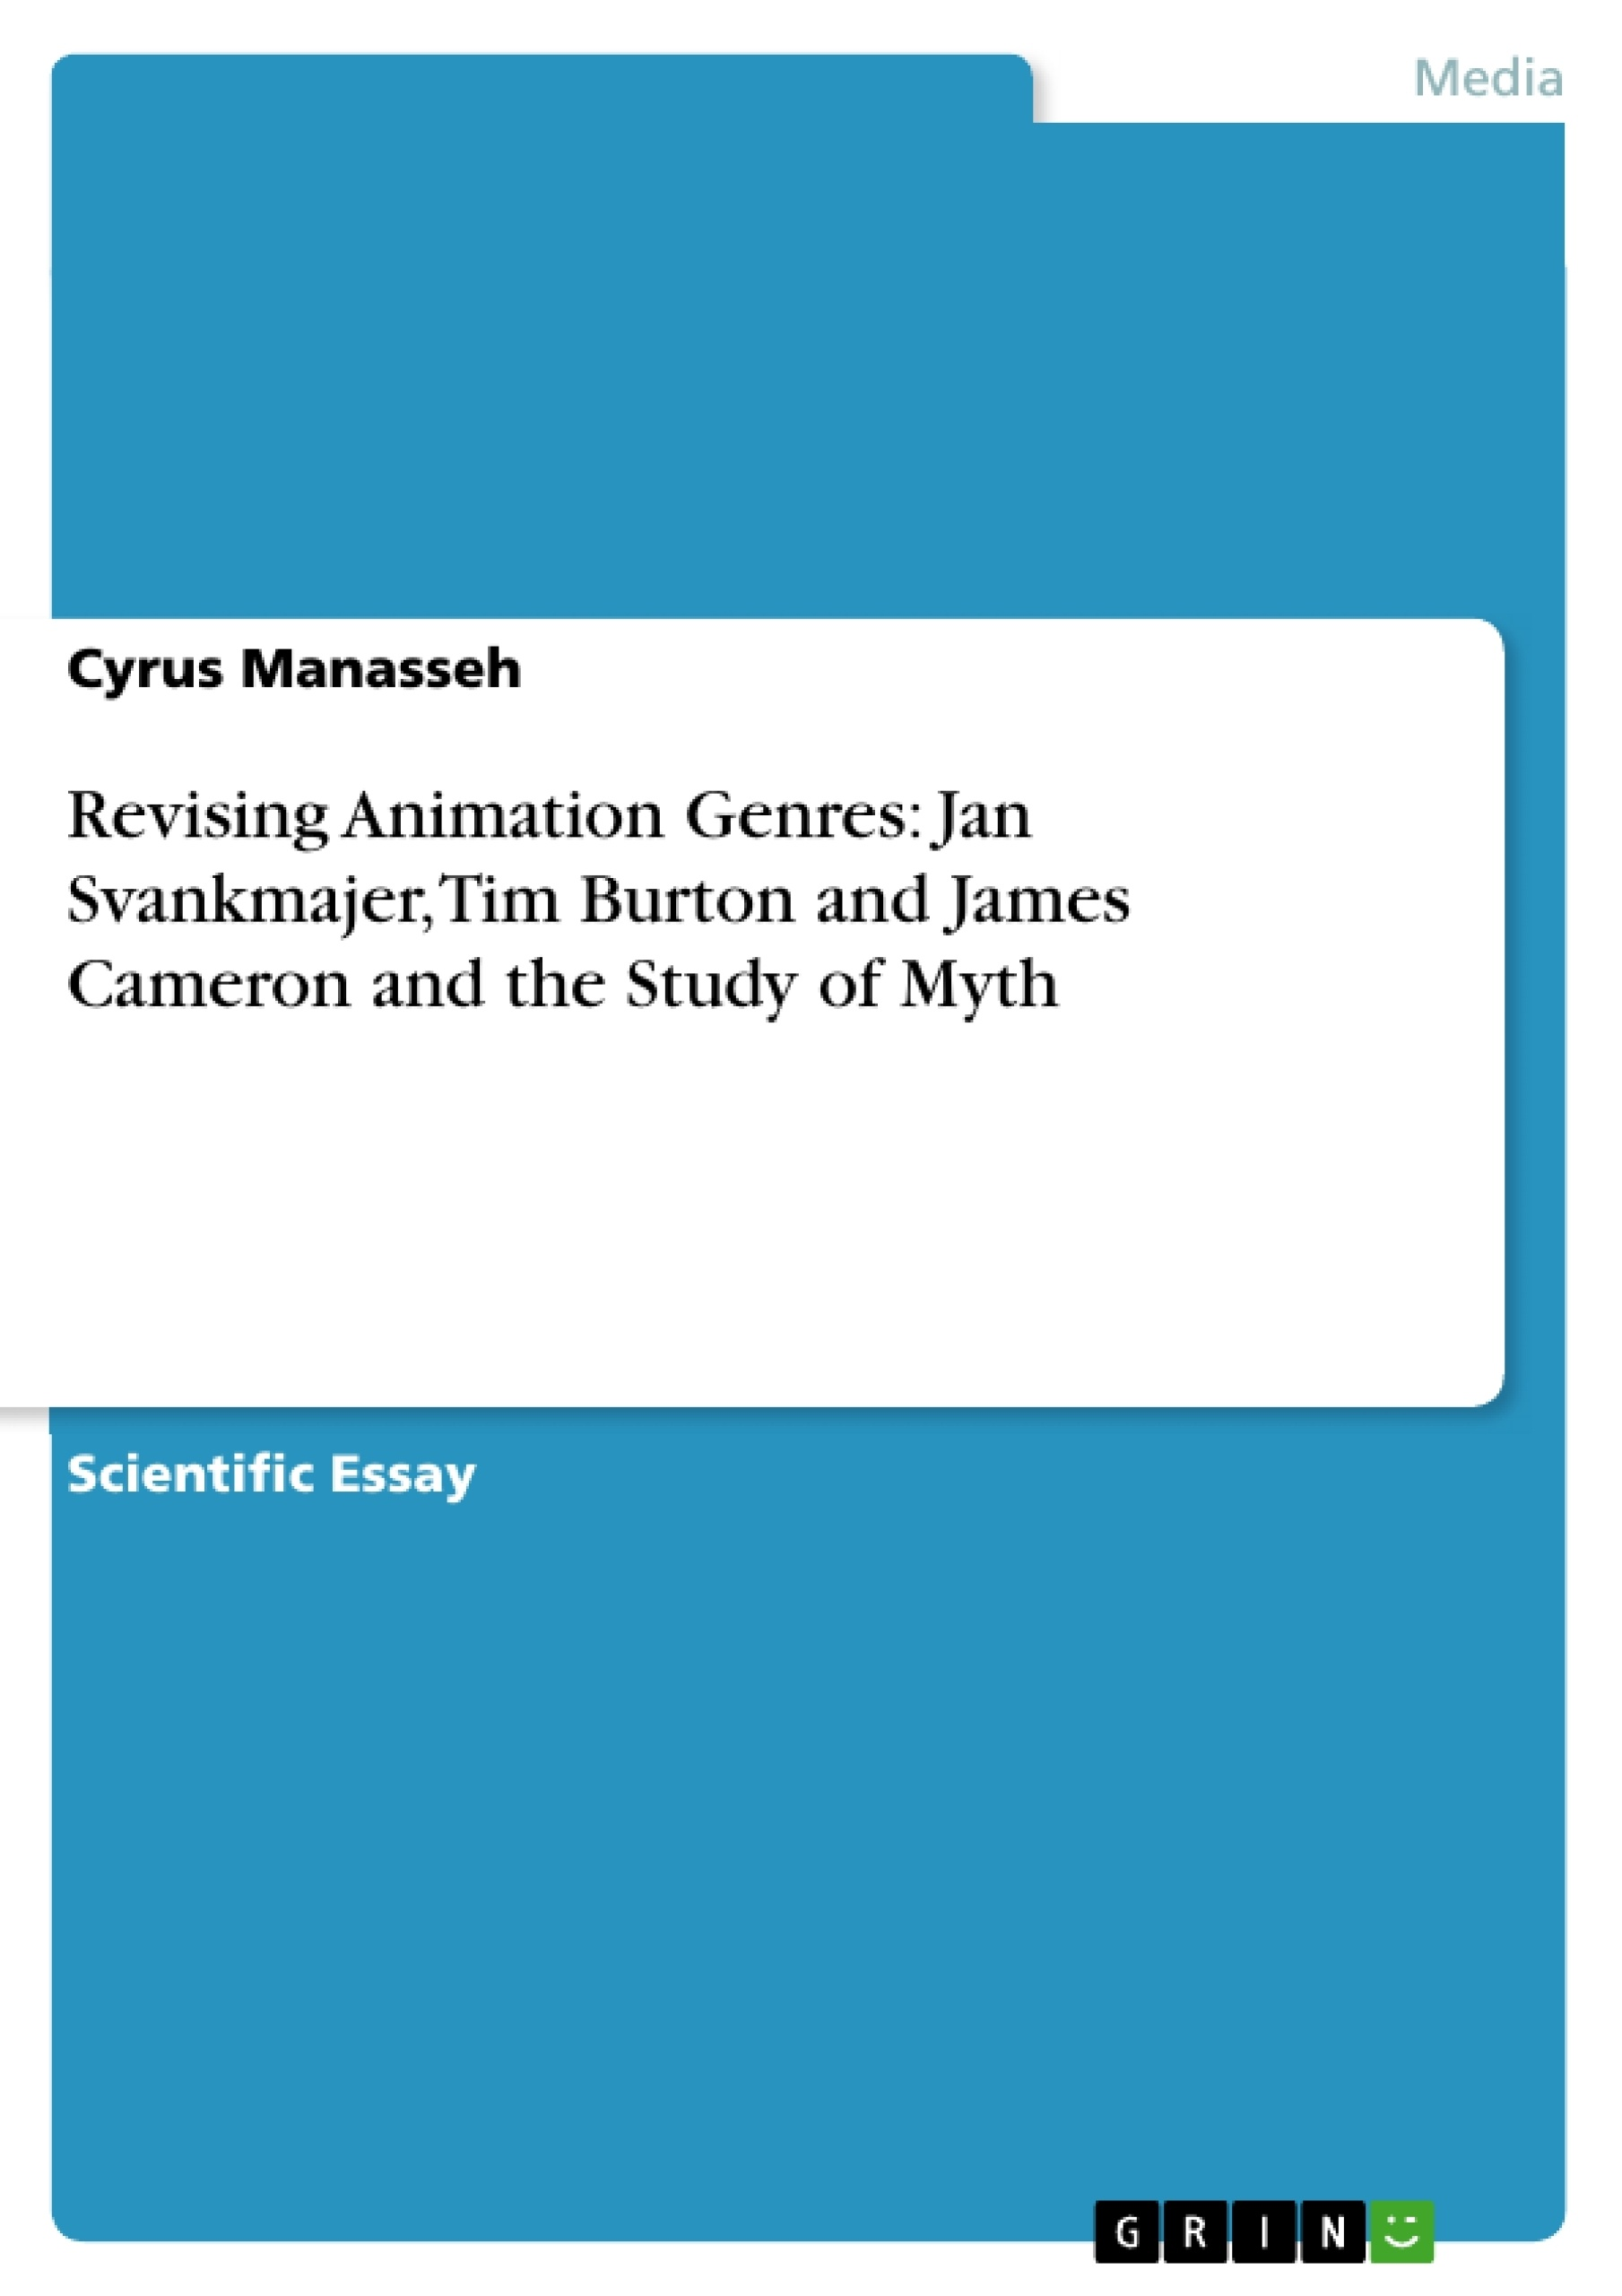 Title: Revising Animation Genres: Jan Svankmajer, Tim Burton and James Cameron and the Study of Myth